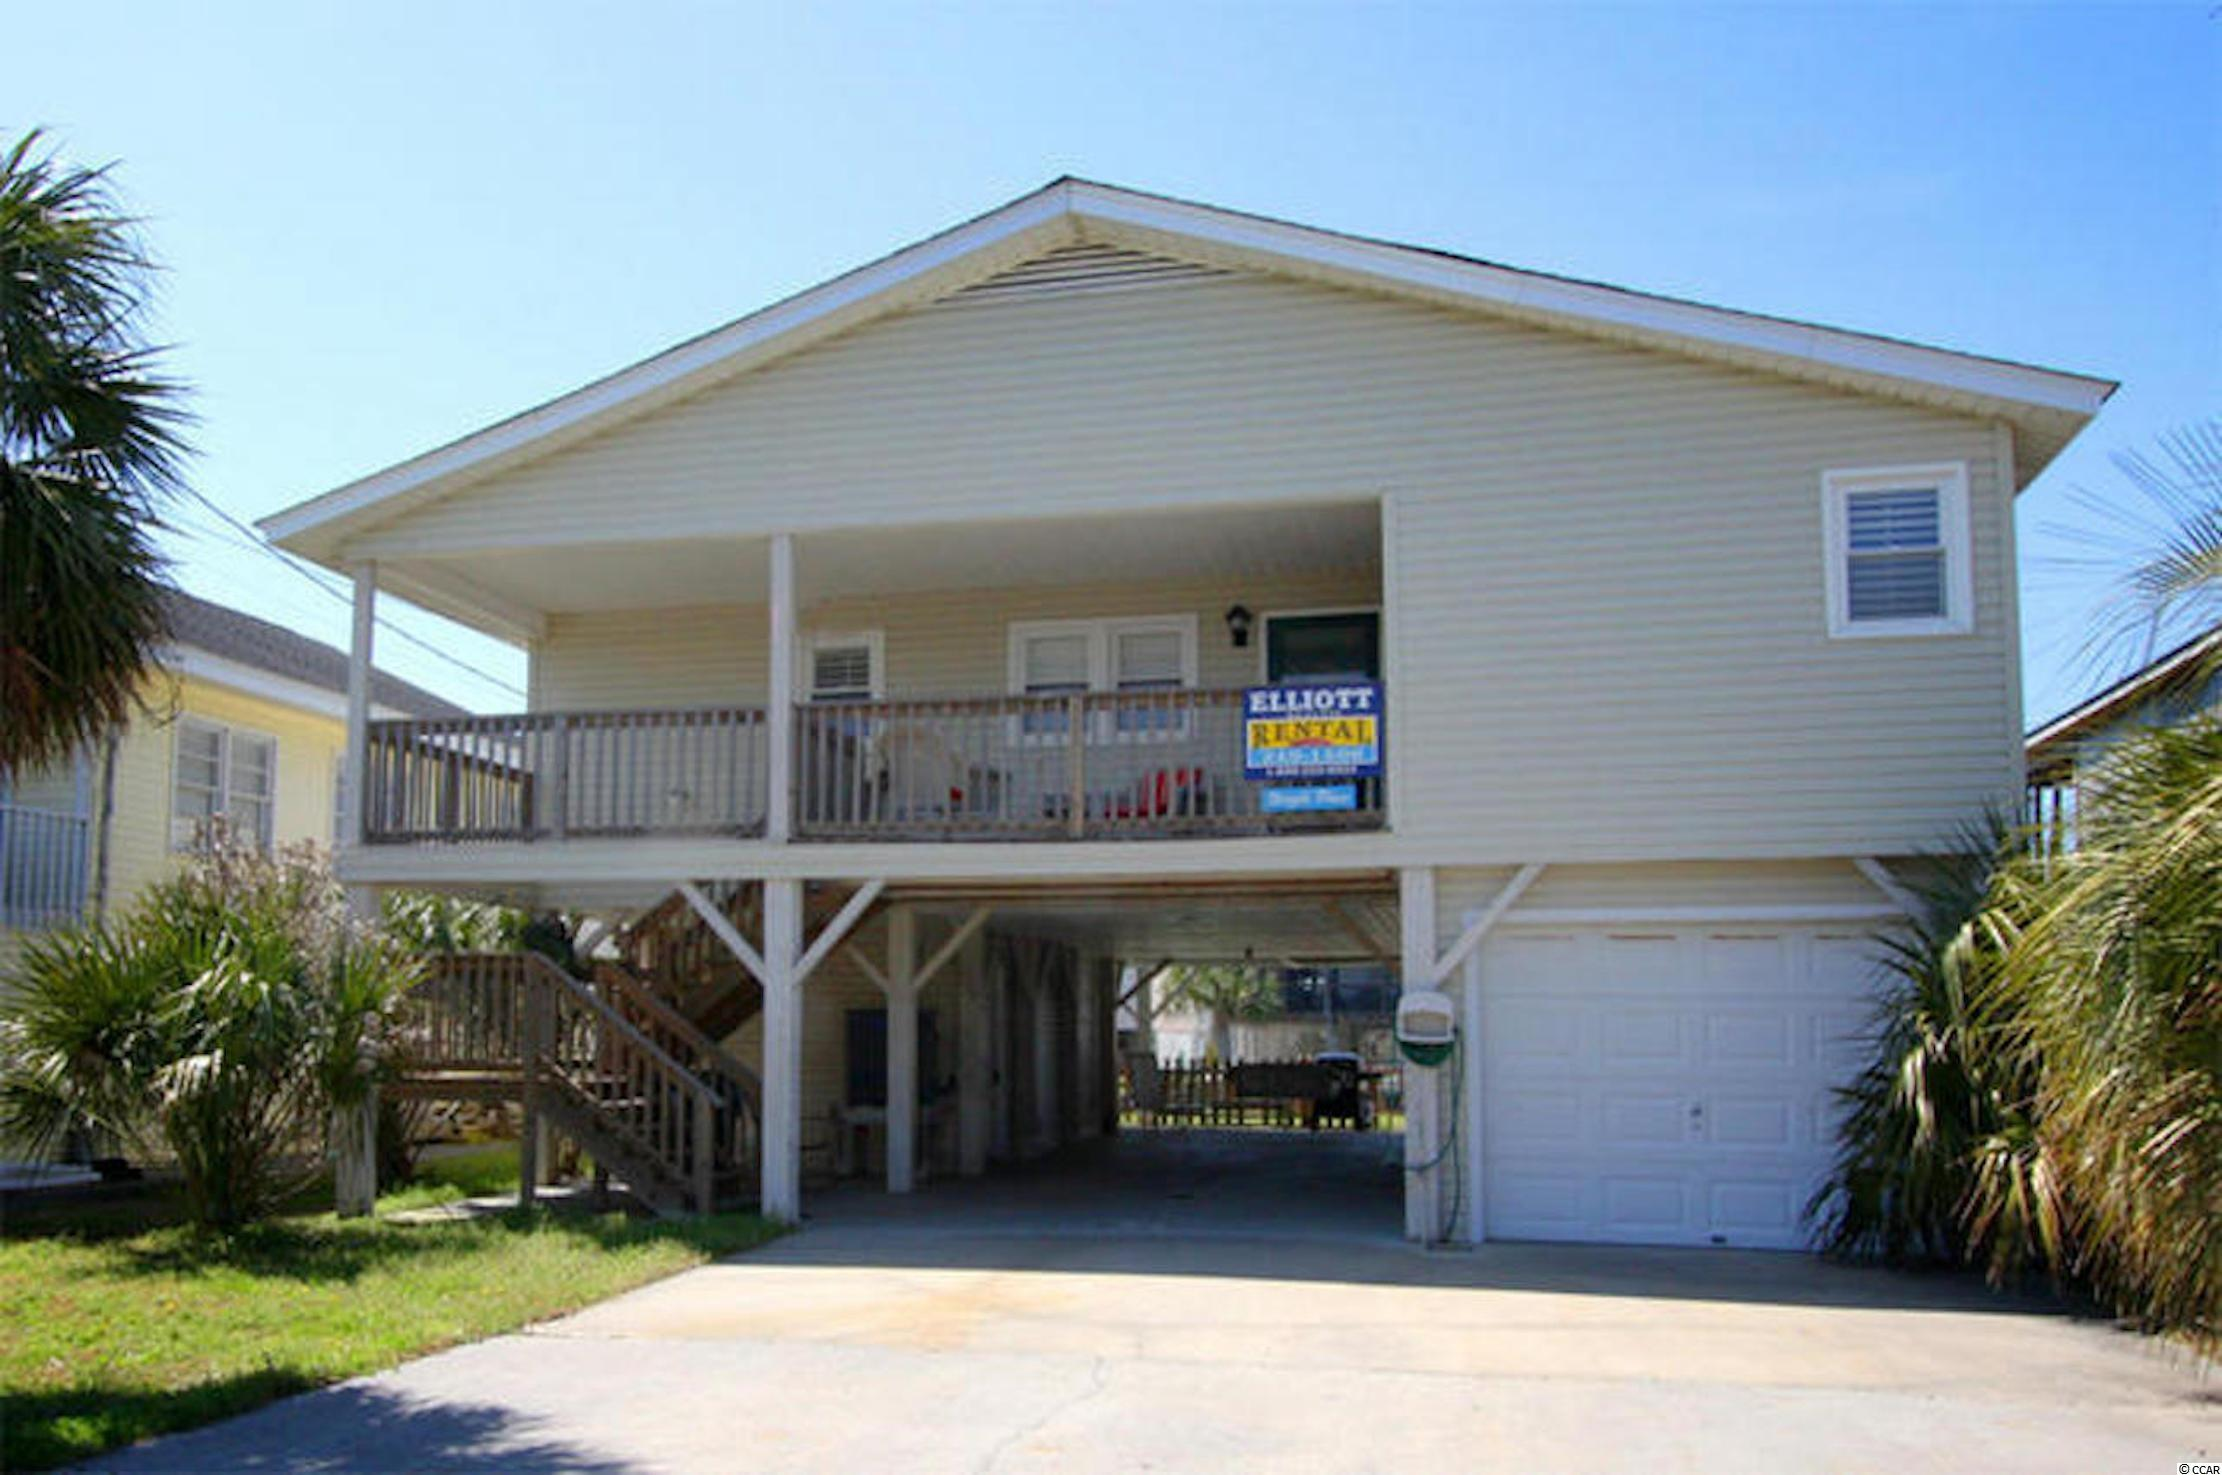 Welcome to this beautiful 4 bed - 2 bath home in the heart of North Myrtle Beach. This home is situated on one of Cherry Grove's highly coveted deep water channels, and just a short walking distance to the sandy beaches of the Atlantic Ocean. Recently remodeled, this home boosts luxury vinyl plank flooring throughout, granite countertops throughout, and an updated lighting package. There was no expense spared during the creation of this outside oasis. The backyard is perfect for entertaining the entire family, which includes a pool, patio, and floating dock. Imagine grilling out for friends and family on the back patio, or watching the sun rise over the channel while sitting on the balcony. This home has it all! This home is currently on a vacation rental program, and has an exceptional rental history!